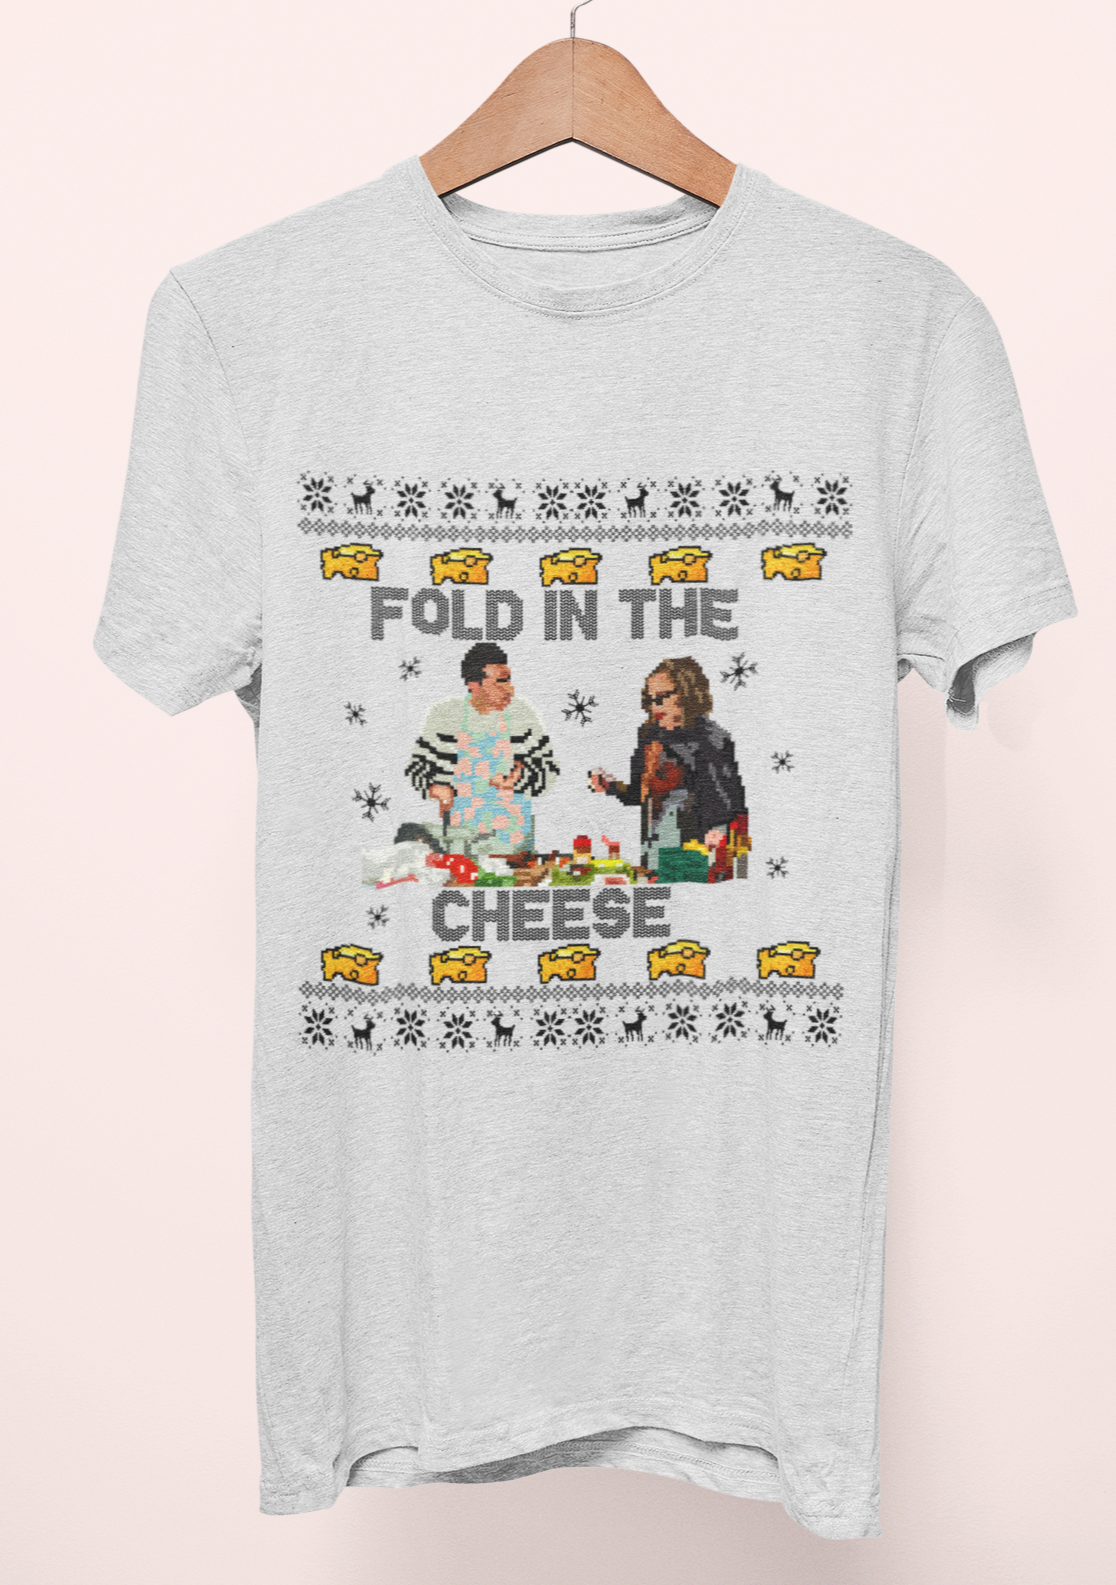 Grey shirt with moira rose and david rose saying fold in the cheese - HighCiti